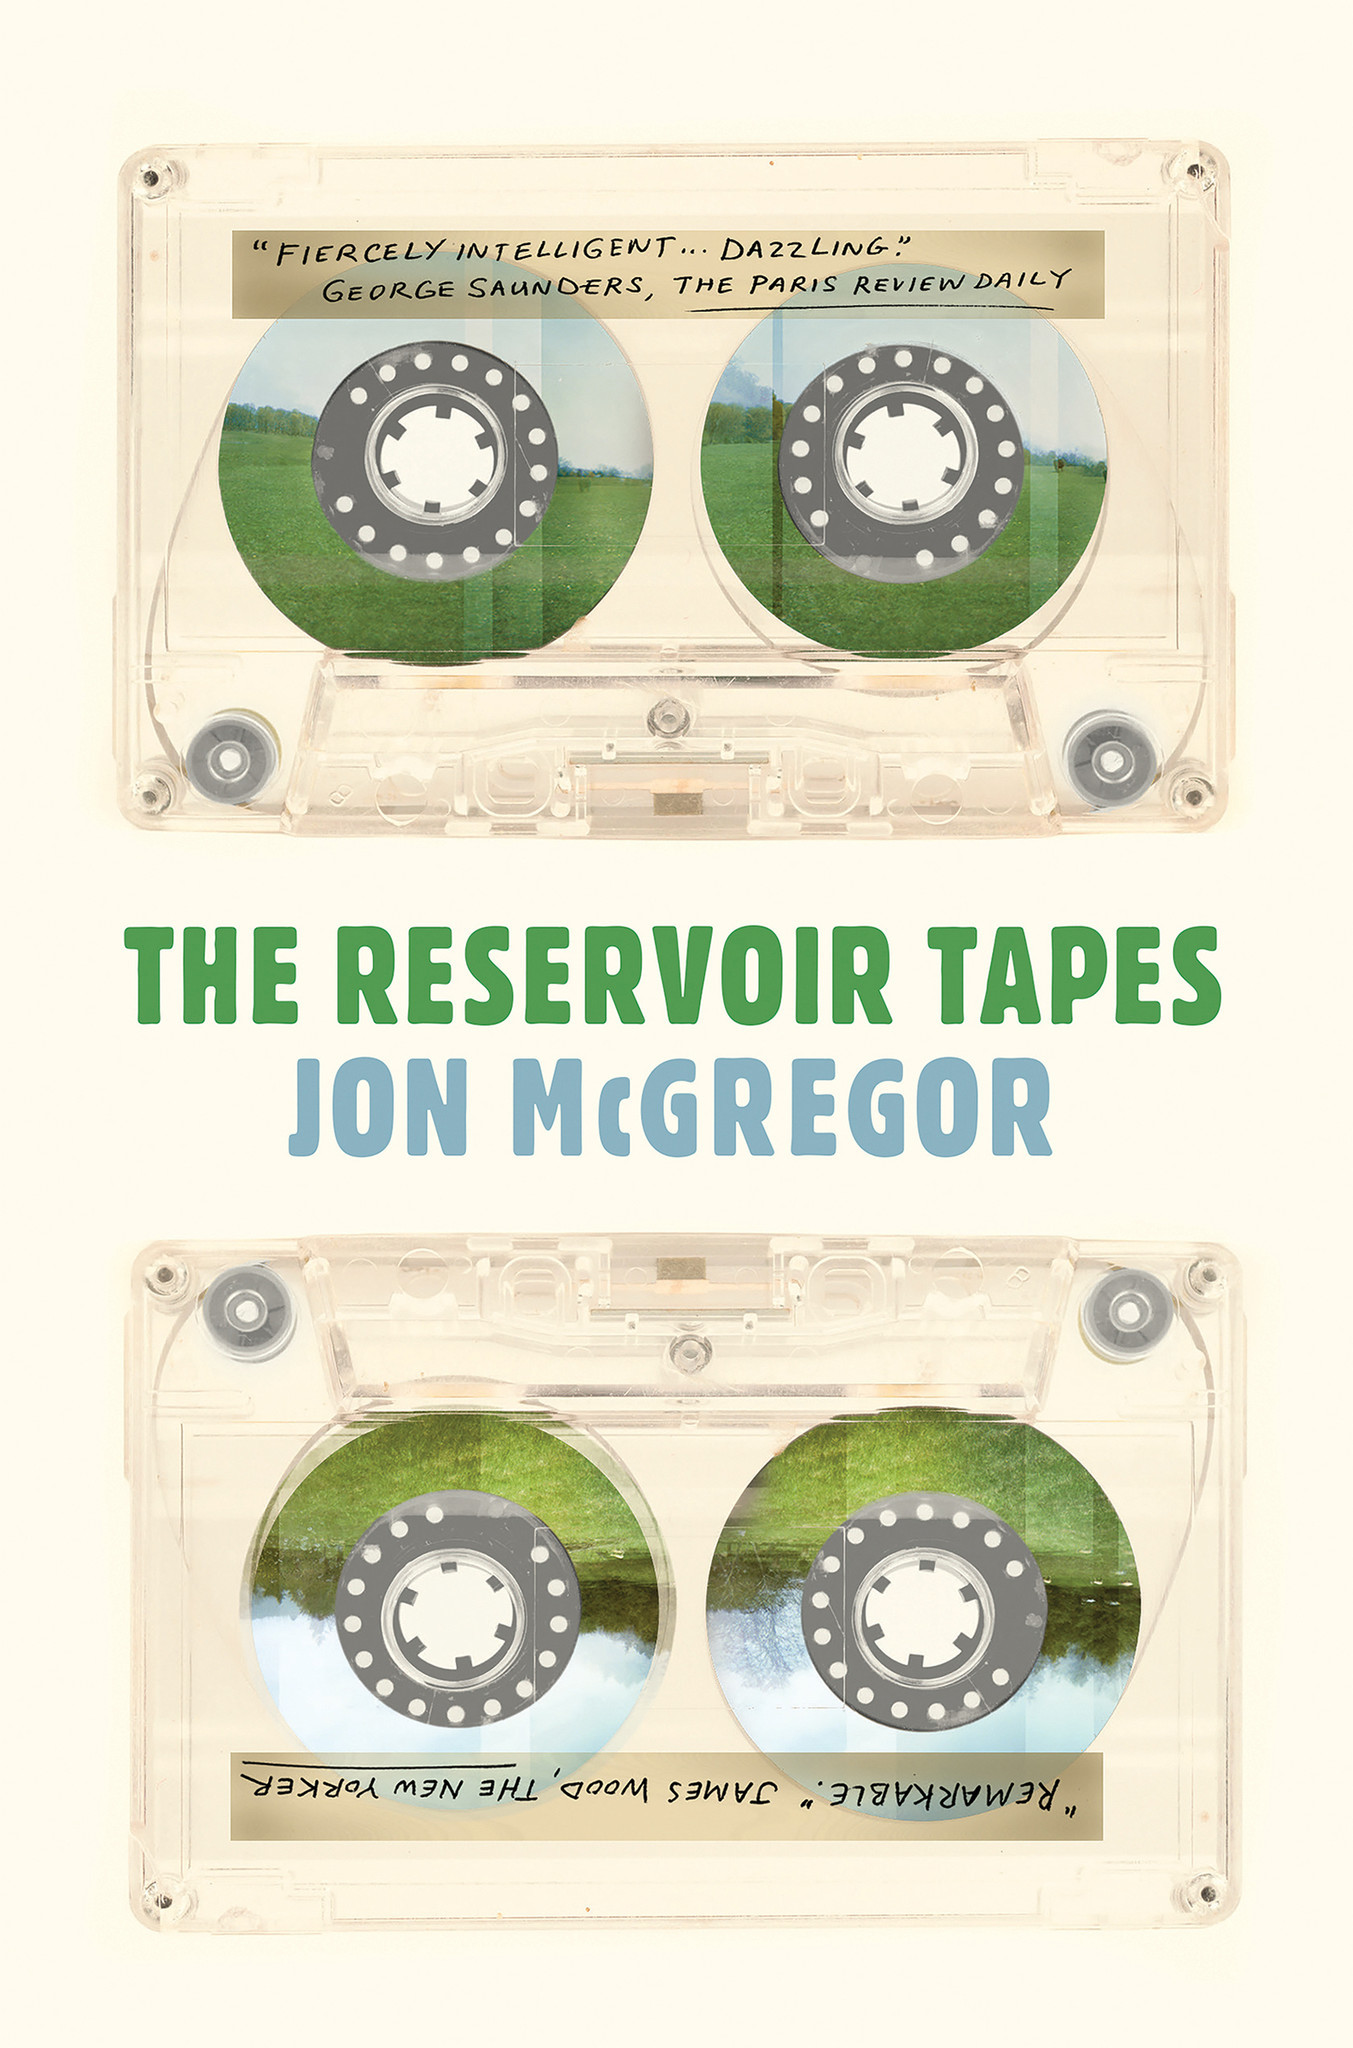 'The Reservoir Tapes' by Jon McGregor